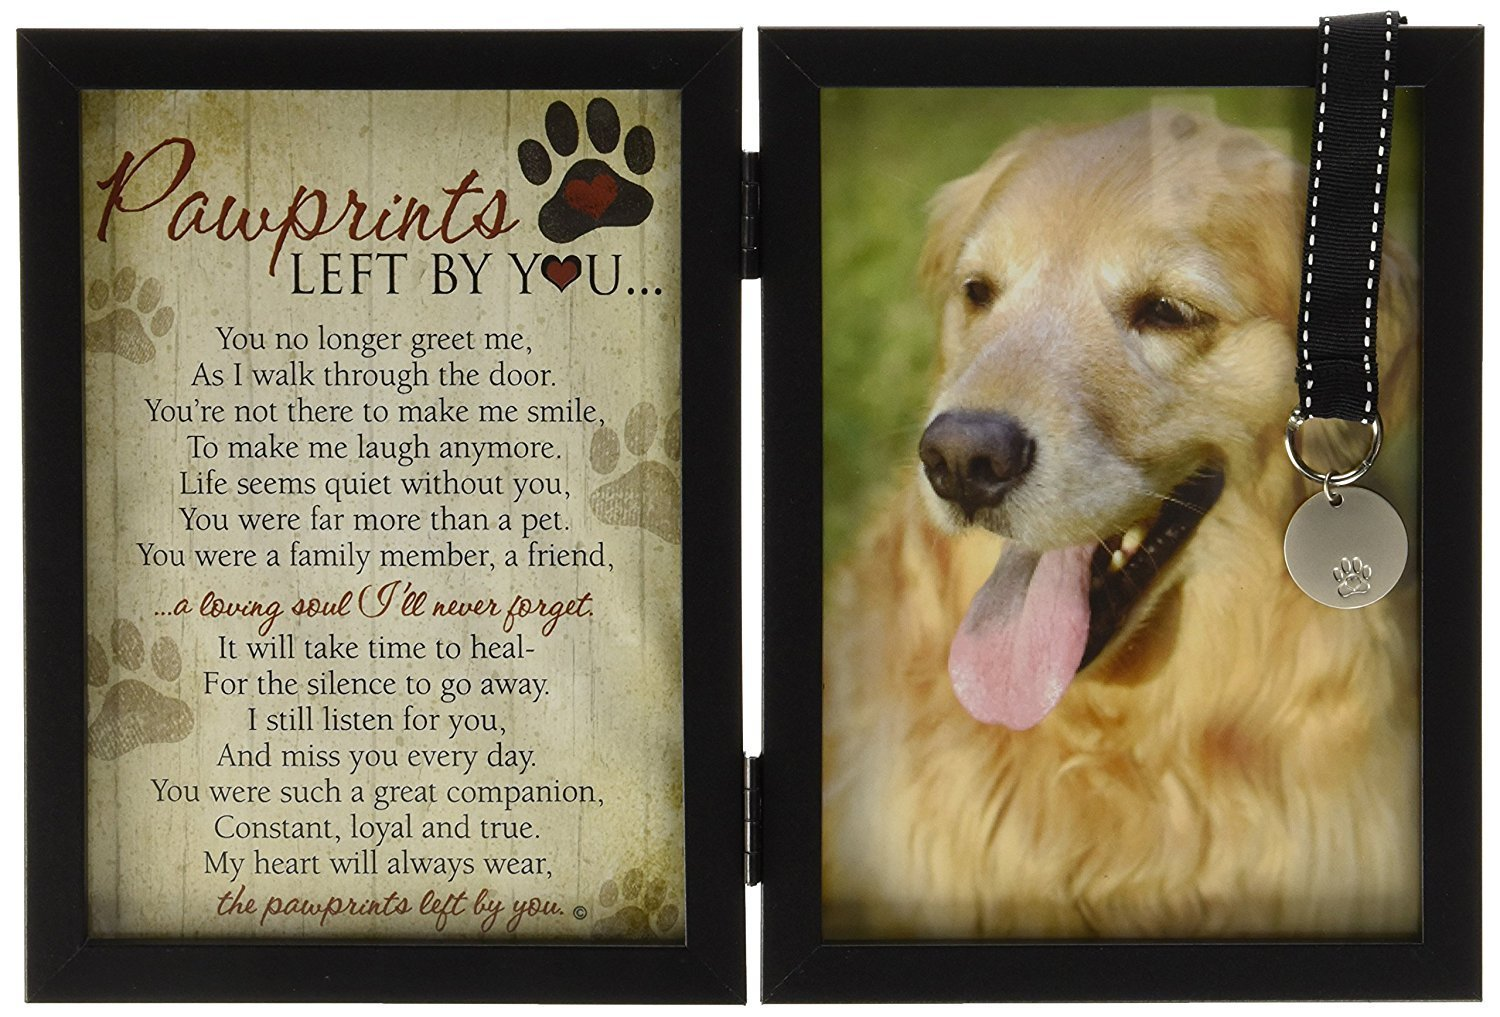 dog supplies online pawprints memorial pet tag frame - pawprints left by you